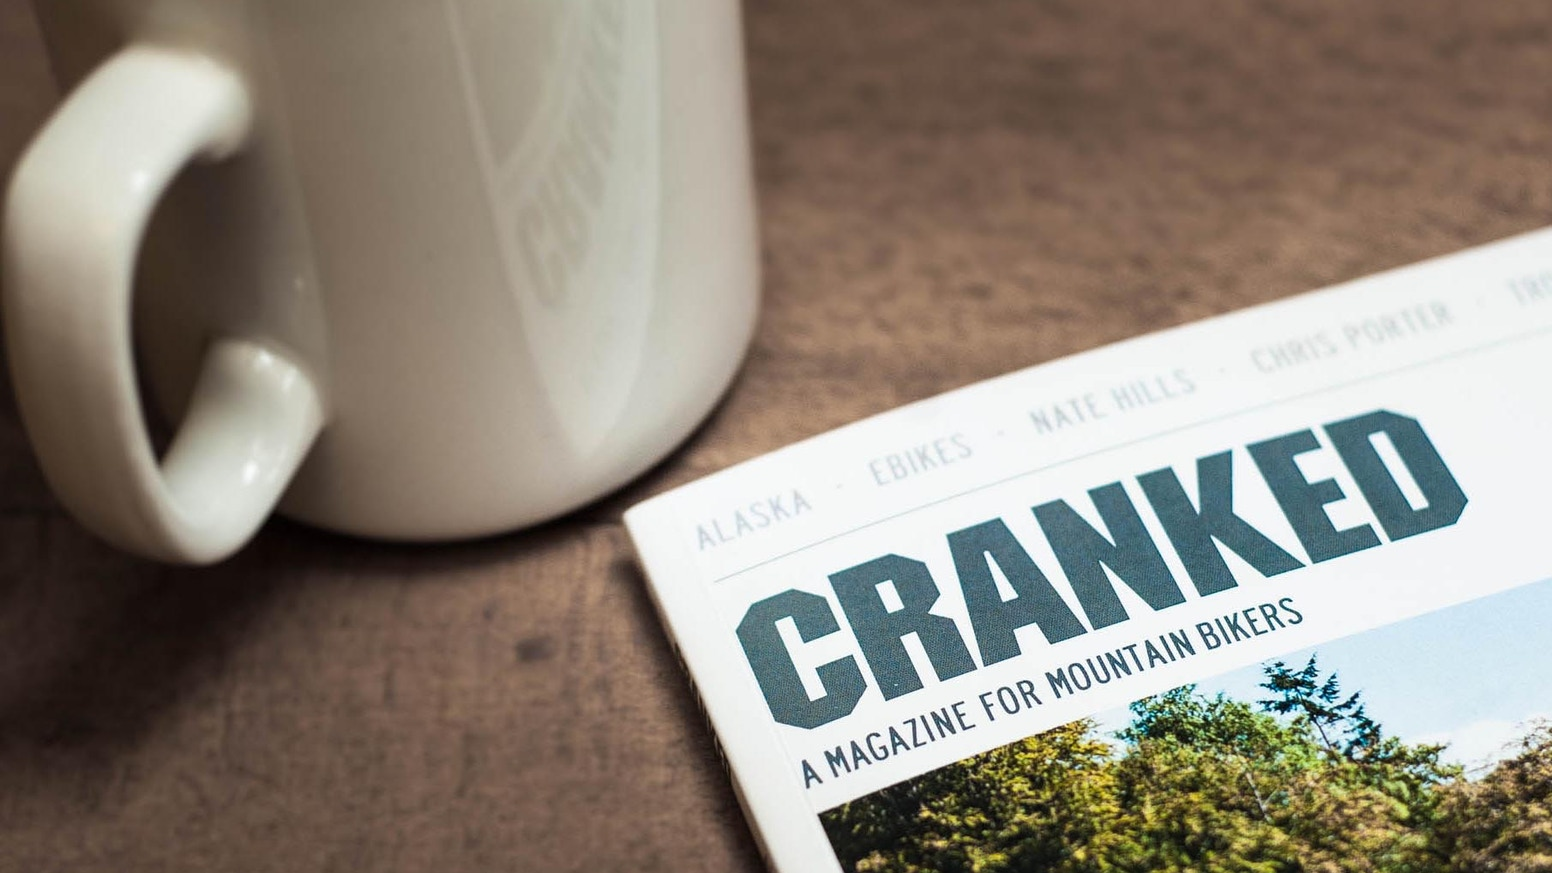 Cranked is a new magazine for mountain bikers. Fabulous photography and writing, beautifully printed and delivered to your door